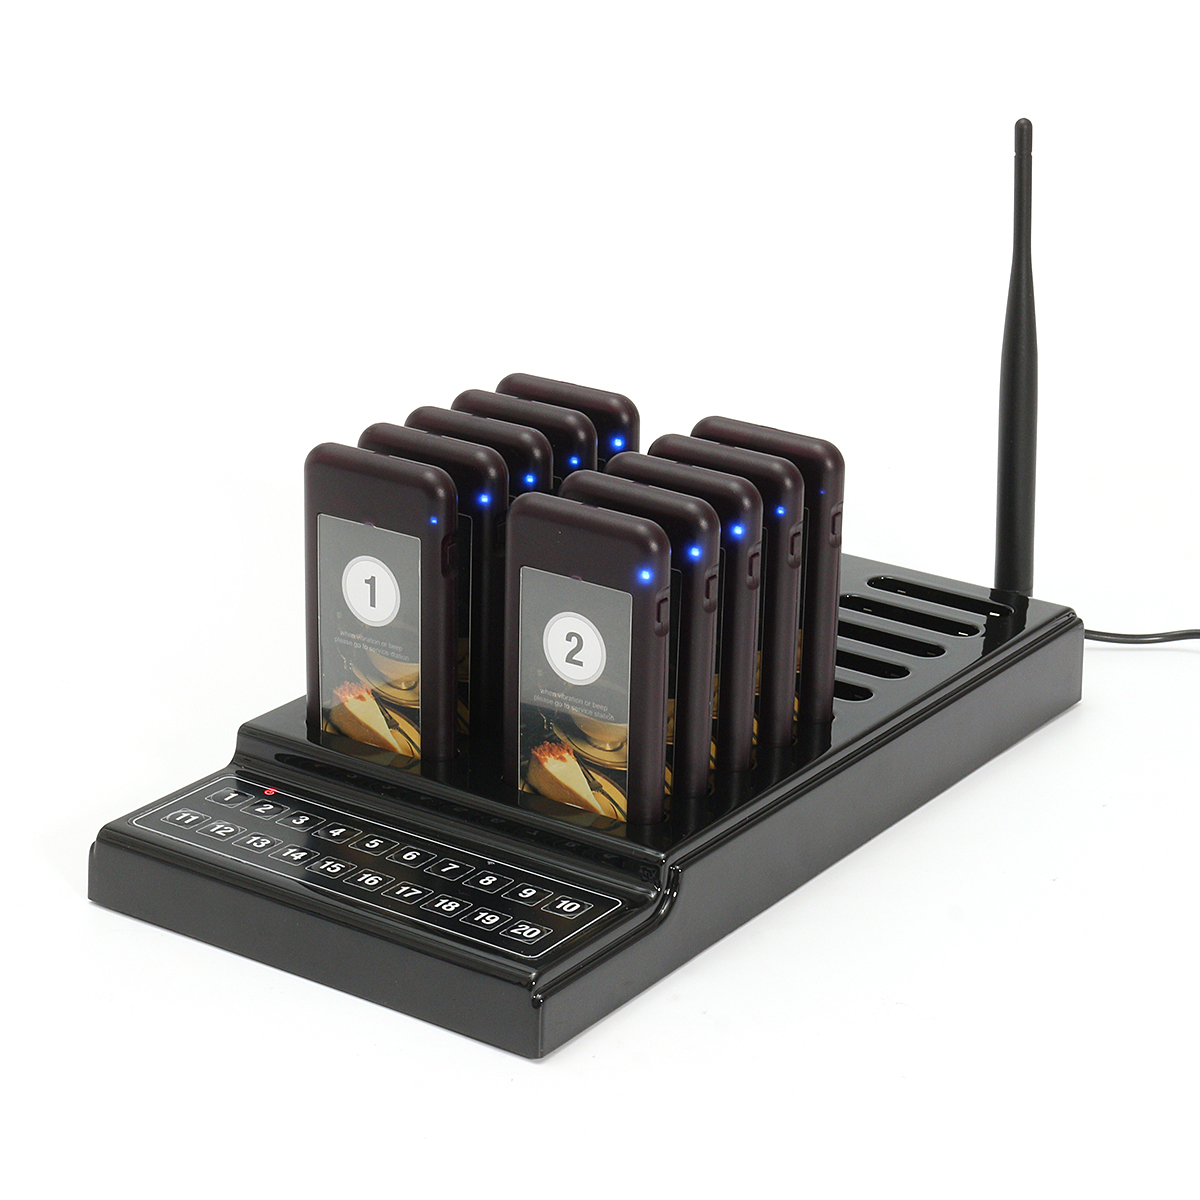 DC 5V Wireless Restaurant Coaster Pagers Guest Waiter Call Paging Queuing System